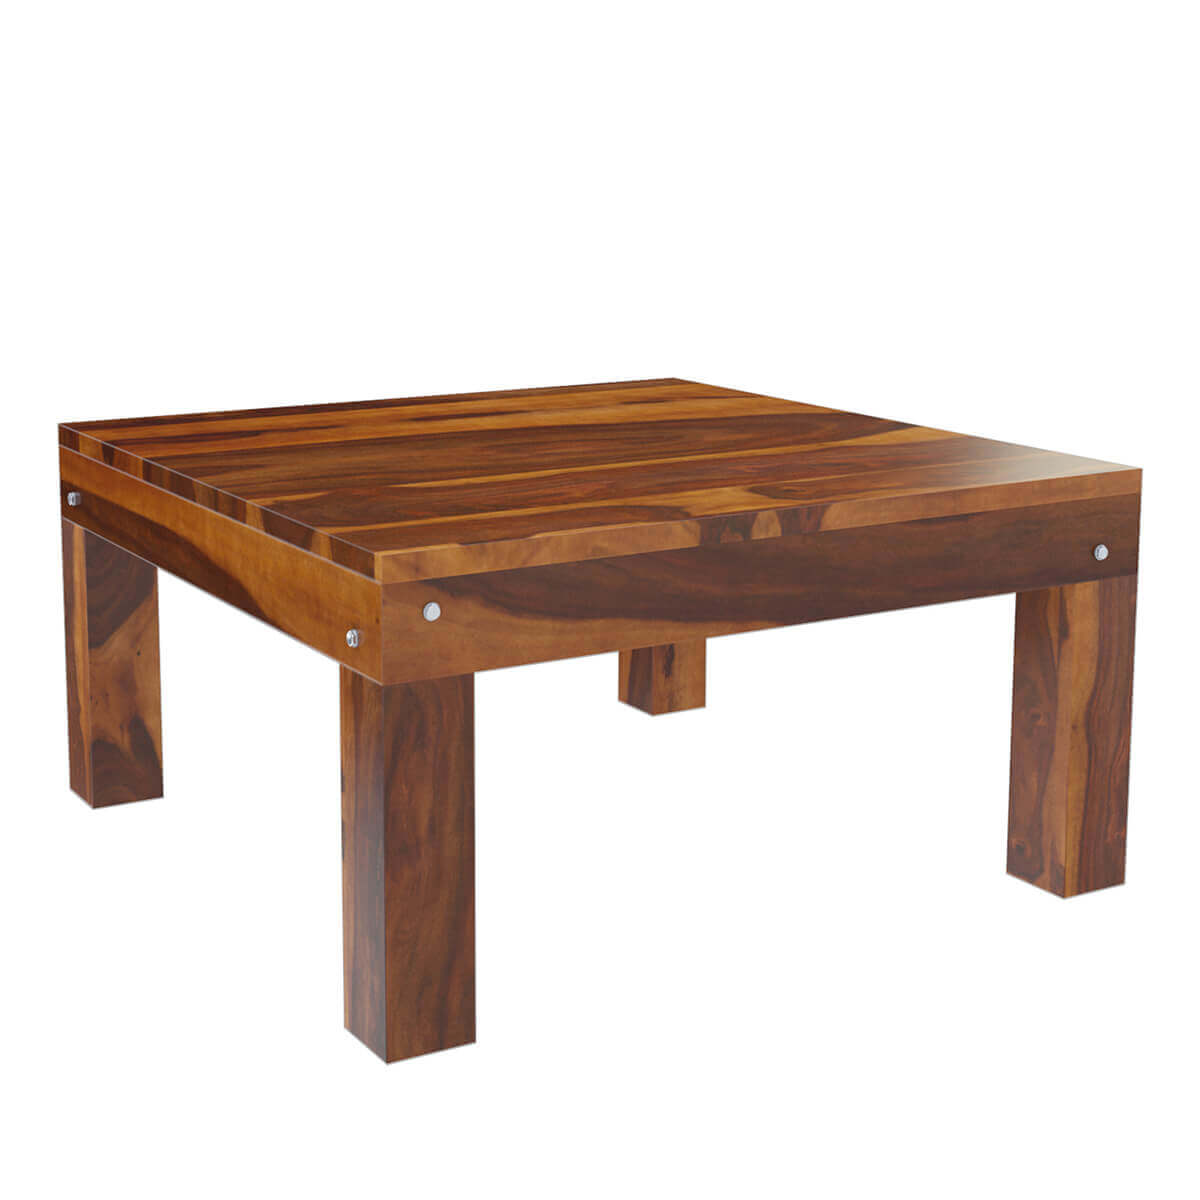 New Chateau Formal Traditional Rustic Cherry Finish Wood: Solid Wood Traditional Rustic Square Coffee Table